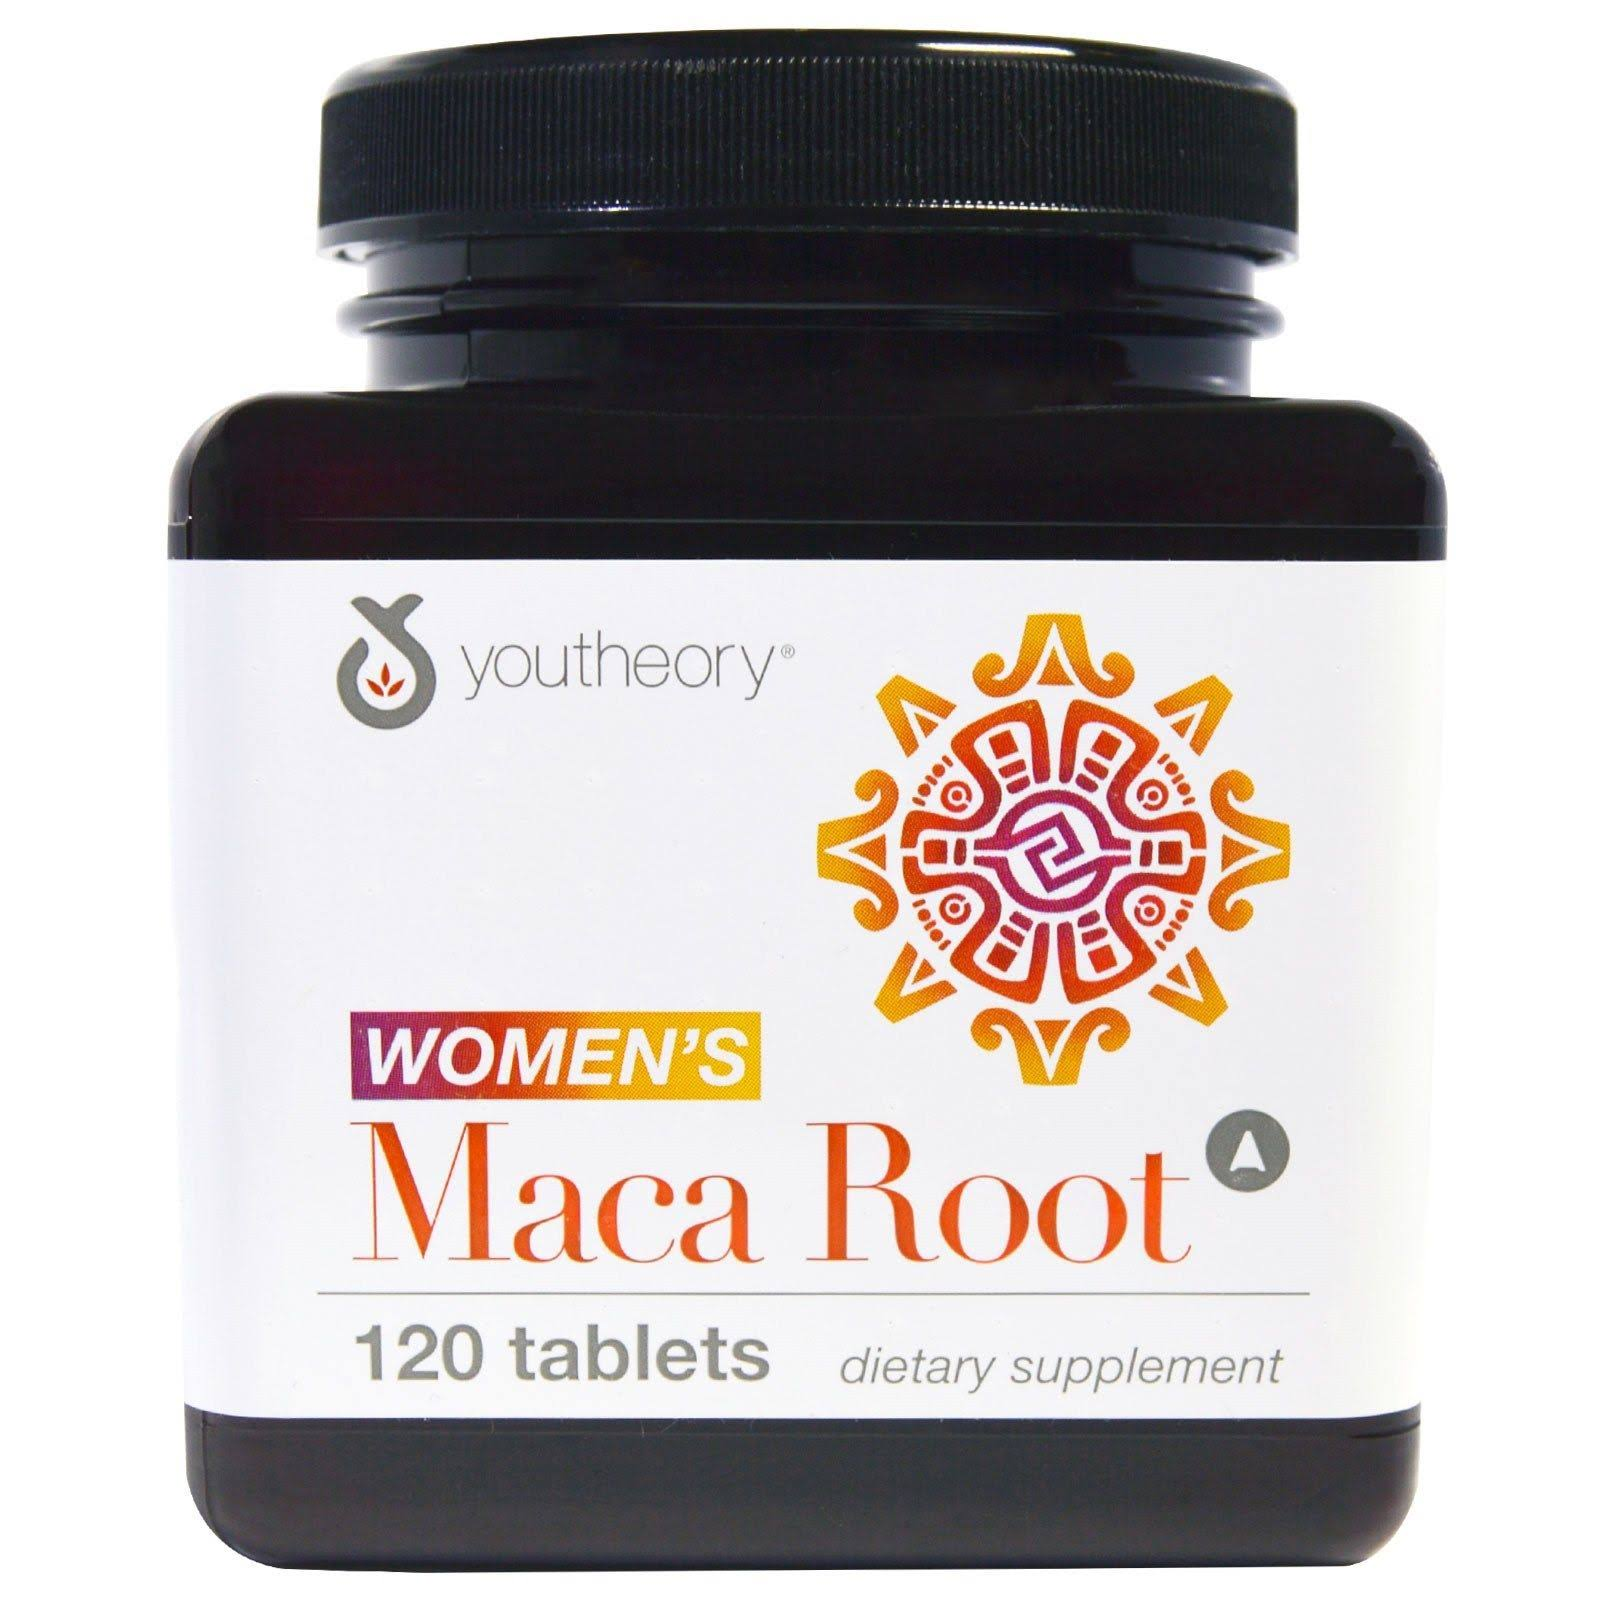 Youtheory Women's Maca Root - 120 Tablets